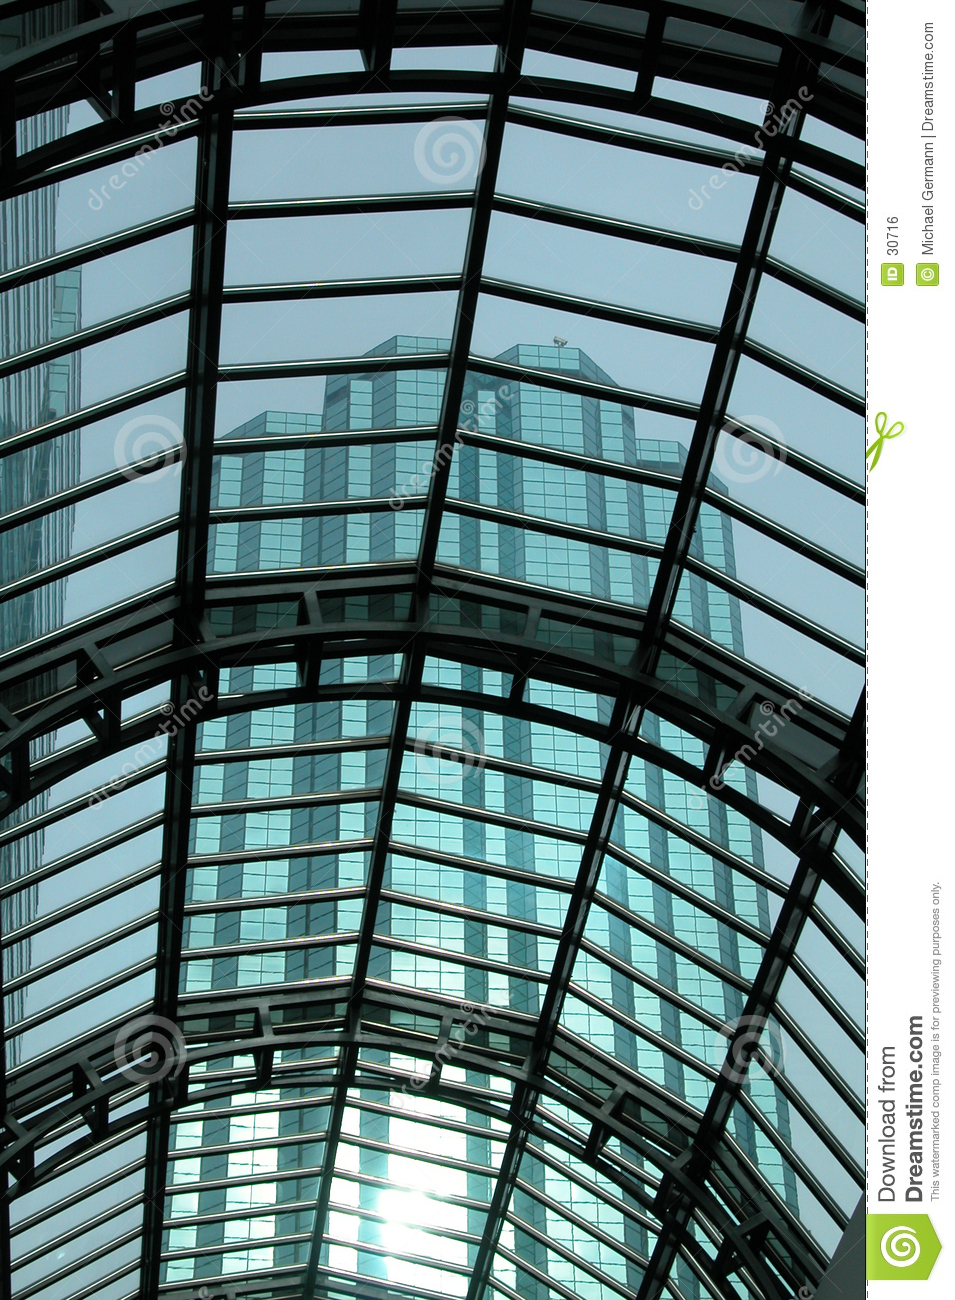 Glass Roofing with skyscraper